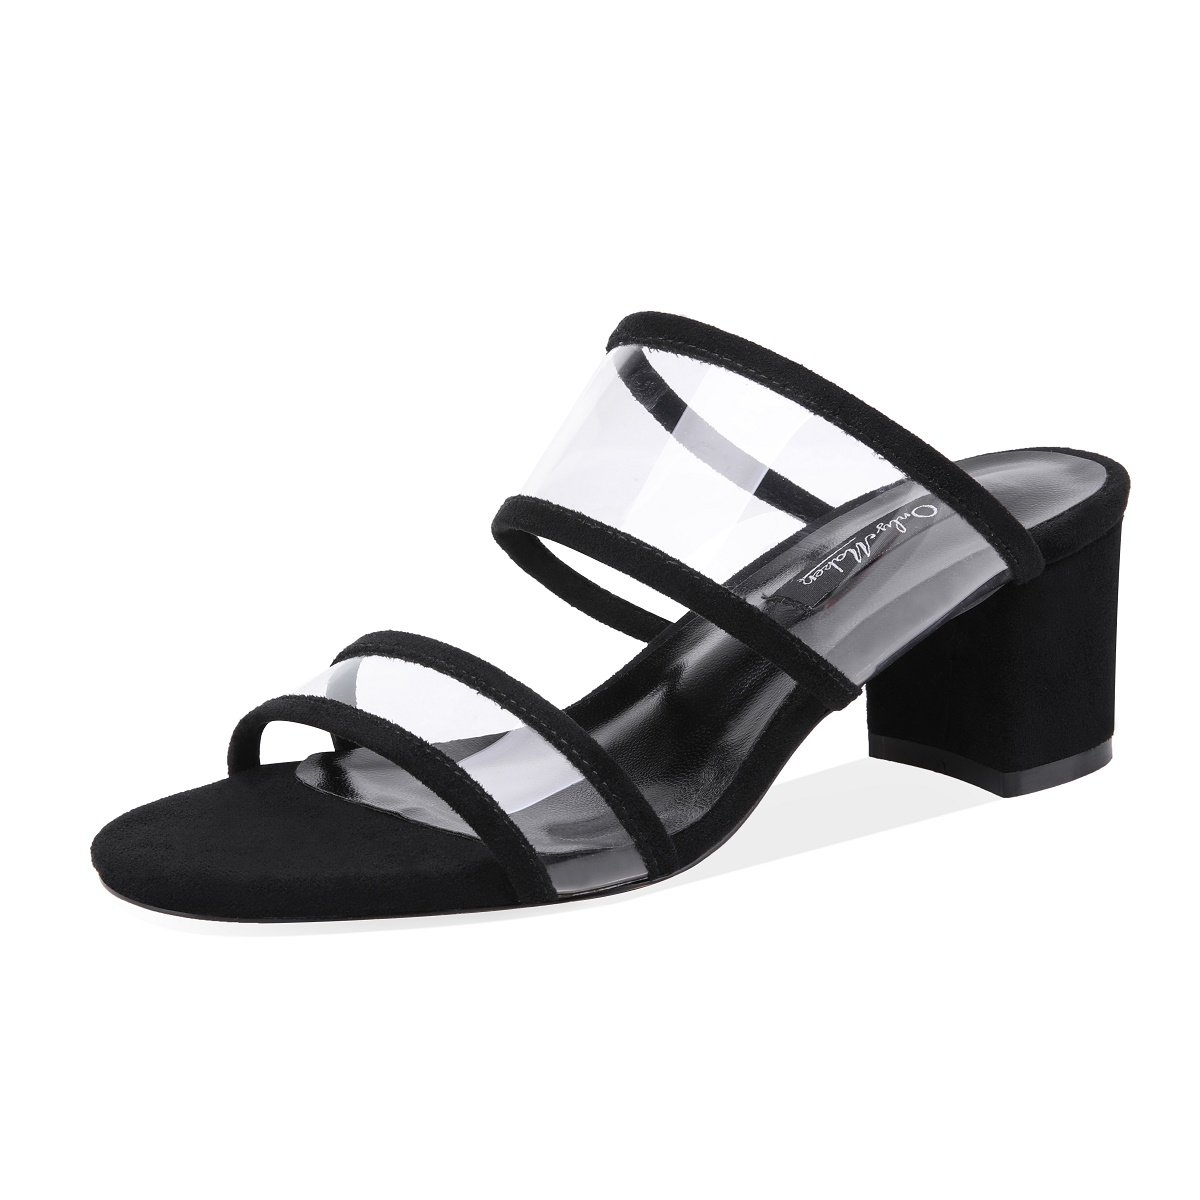 d8729d65a62 onlymaker Womens PVC Clear Double Straps Block Heel Slide Sandals Open Toe  Slip on Mule Dress Slippers Summer Shoes